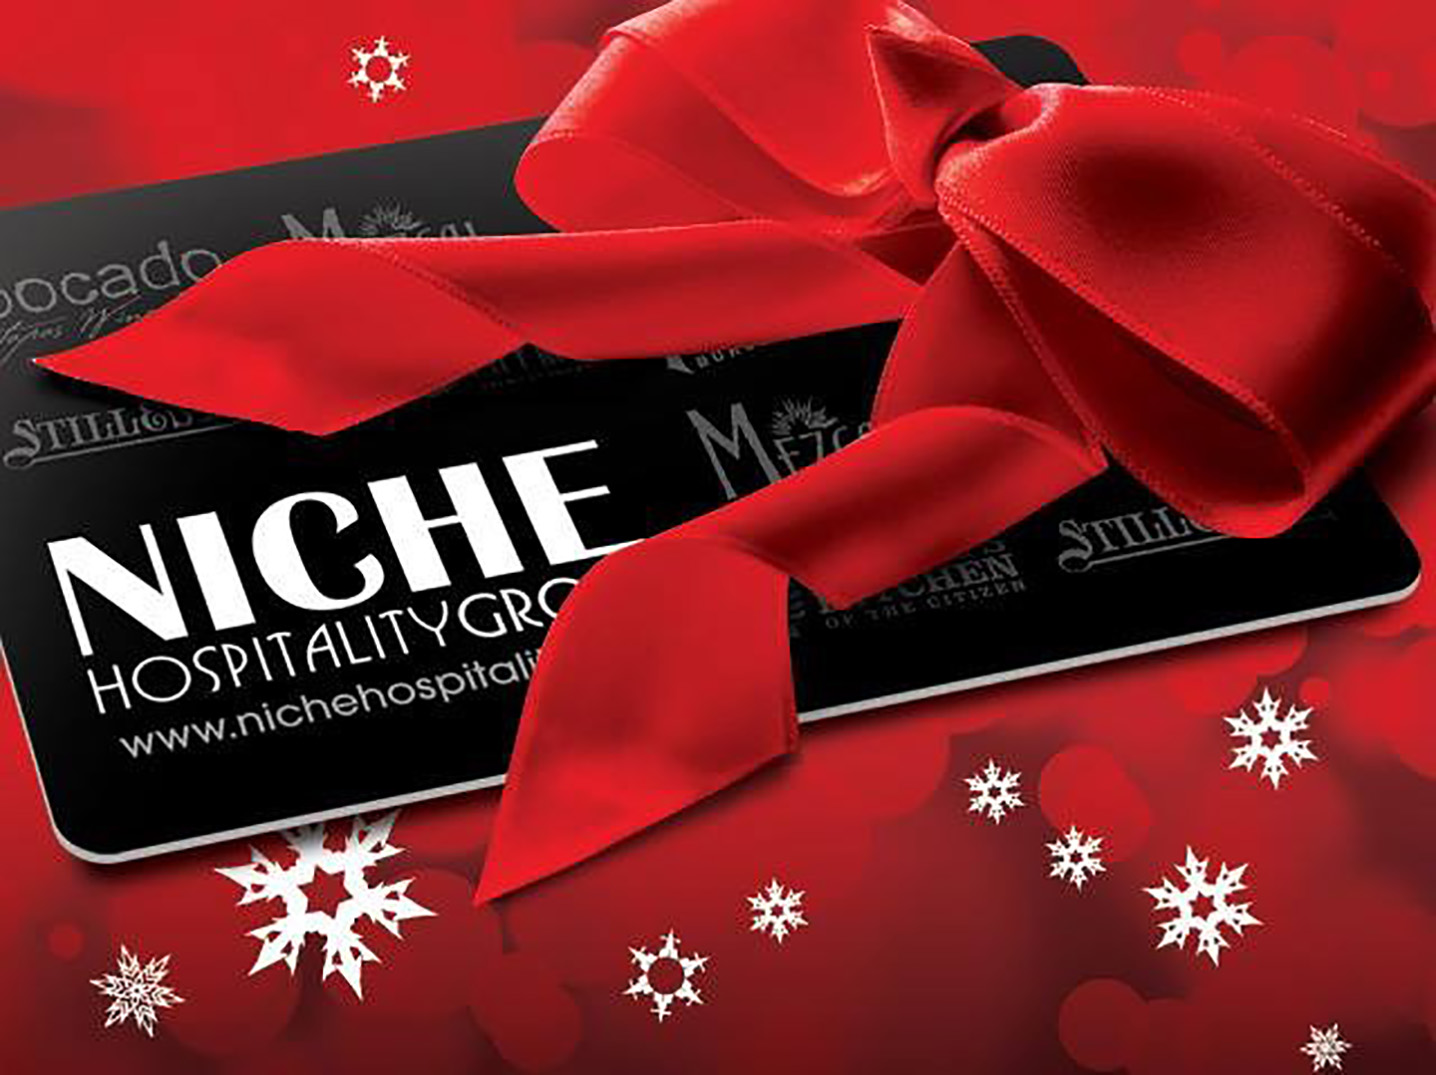 Why You Should Give the Gift of Niche This Holiday Season